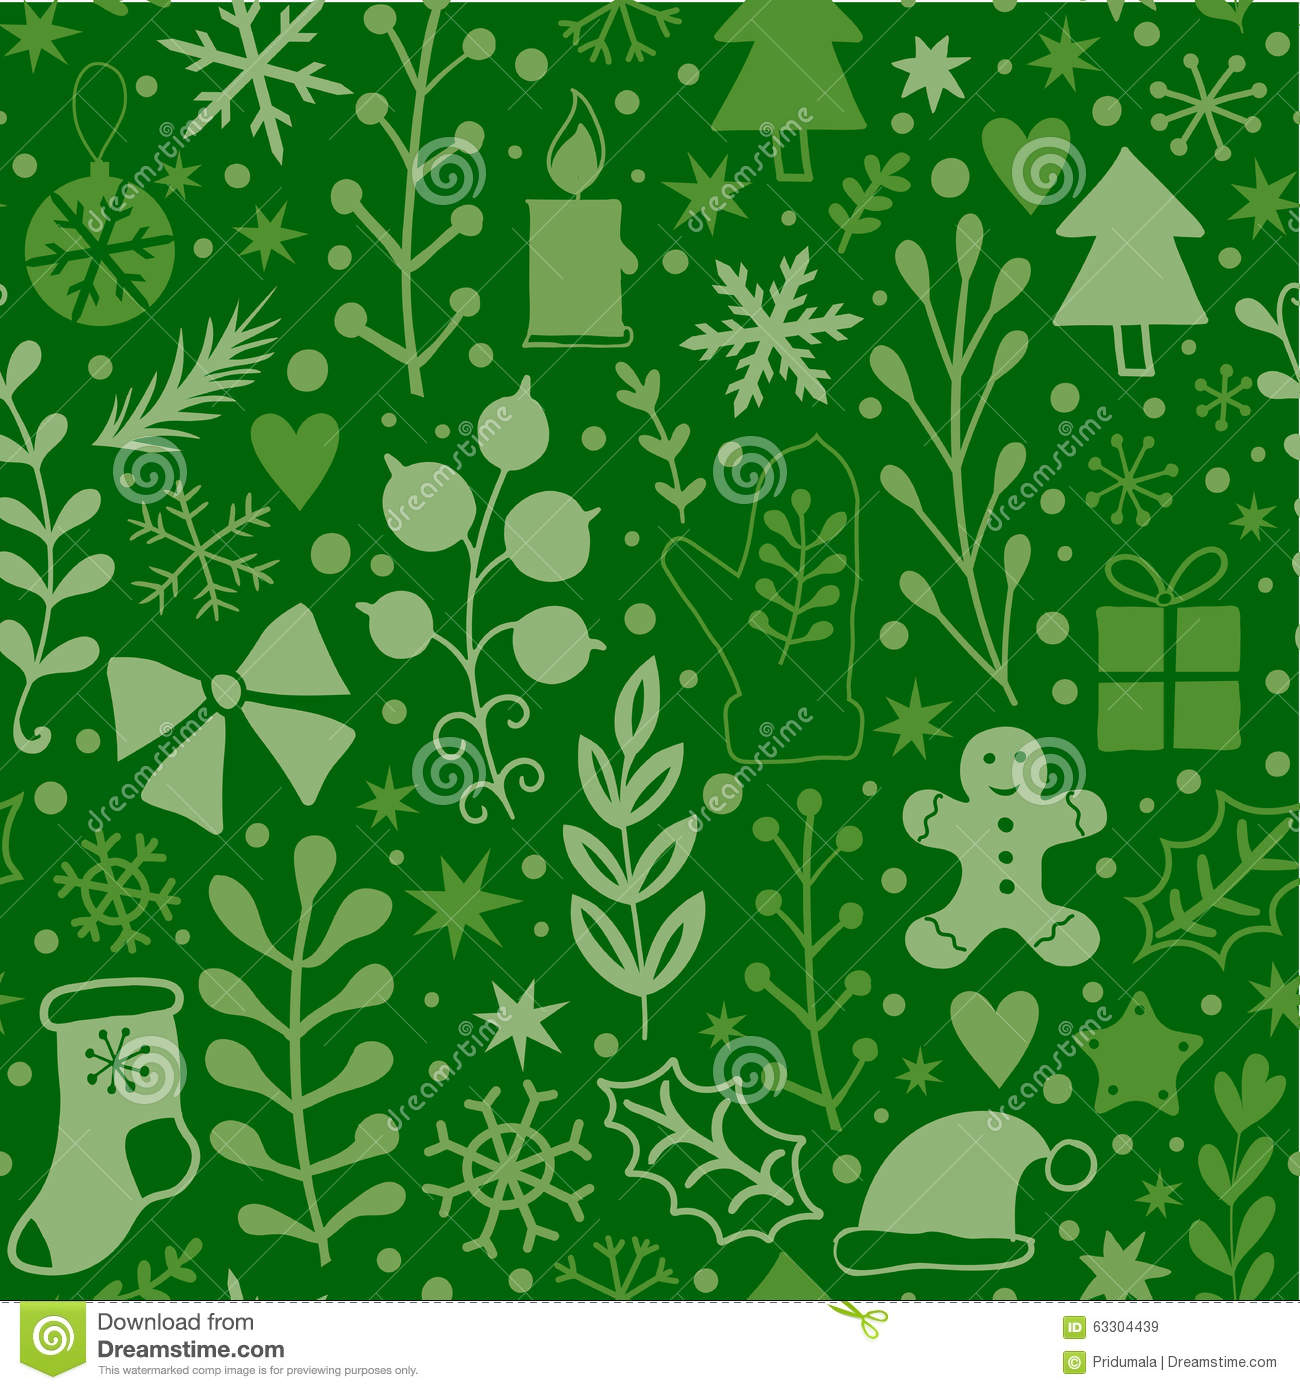 Merry Christmas Seamless Pattern Green Plants Happy New